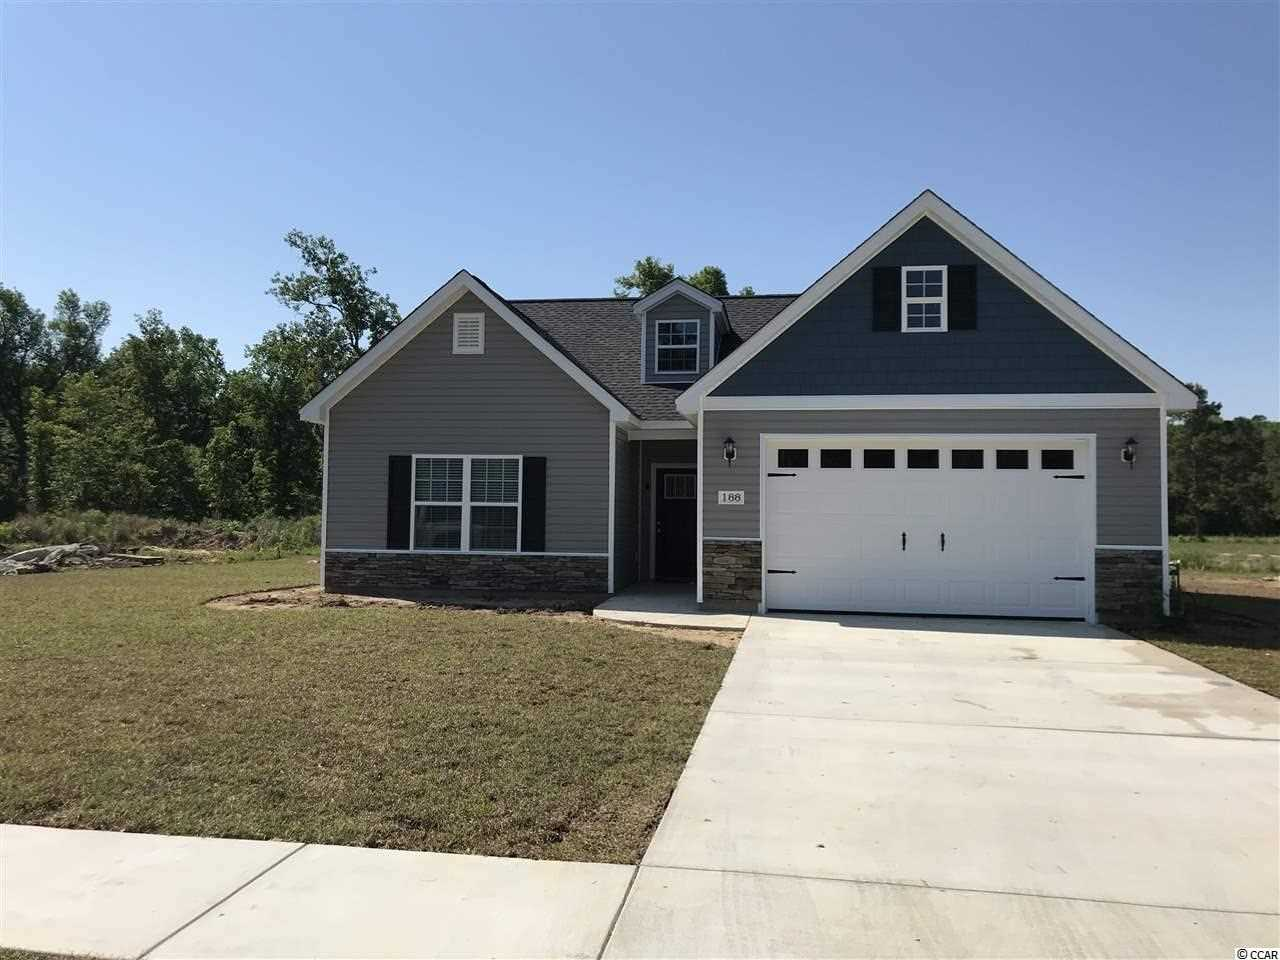 188 Springtide Drive Conway, SC 29527 | MLS 1725318 Photo 1